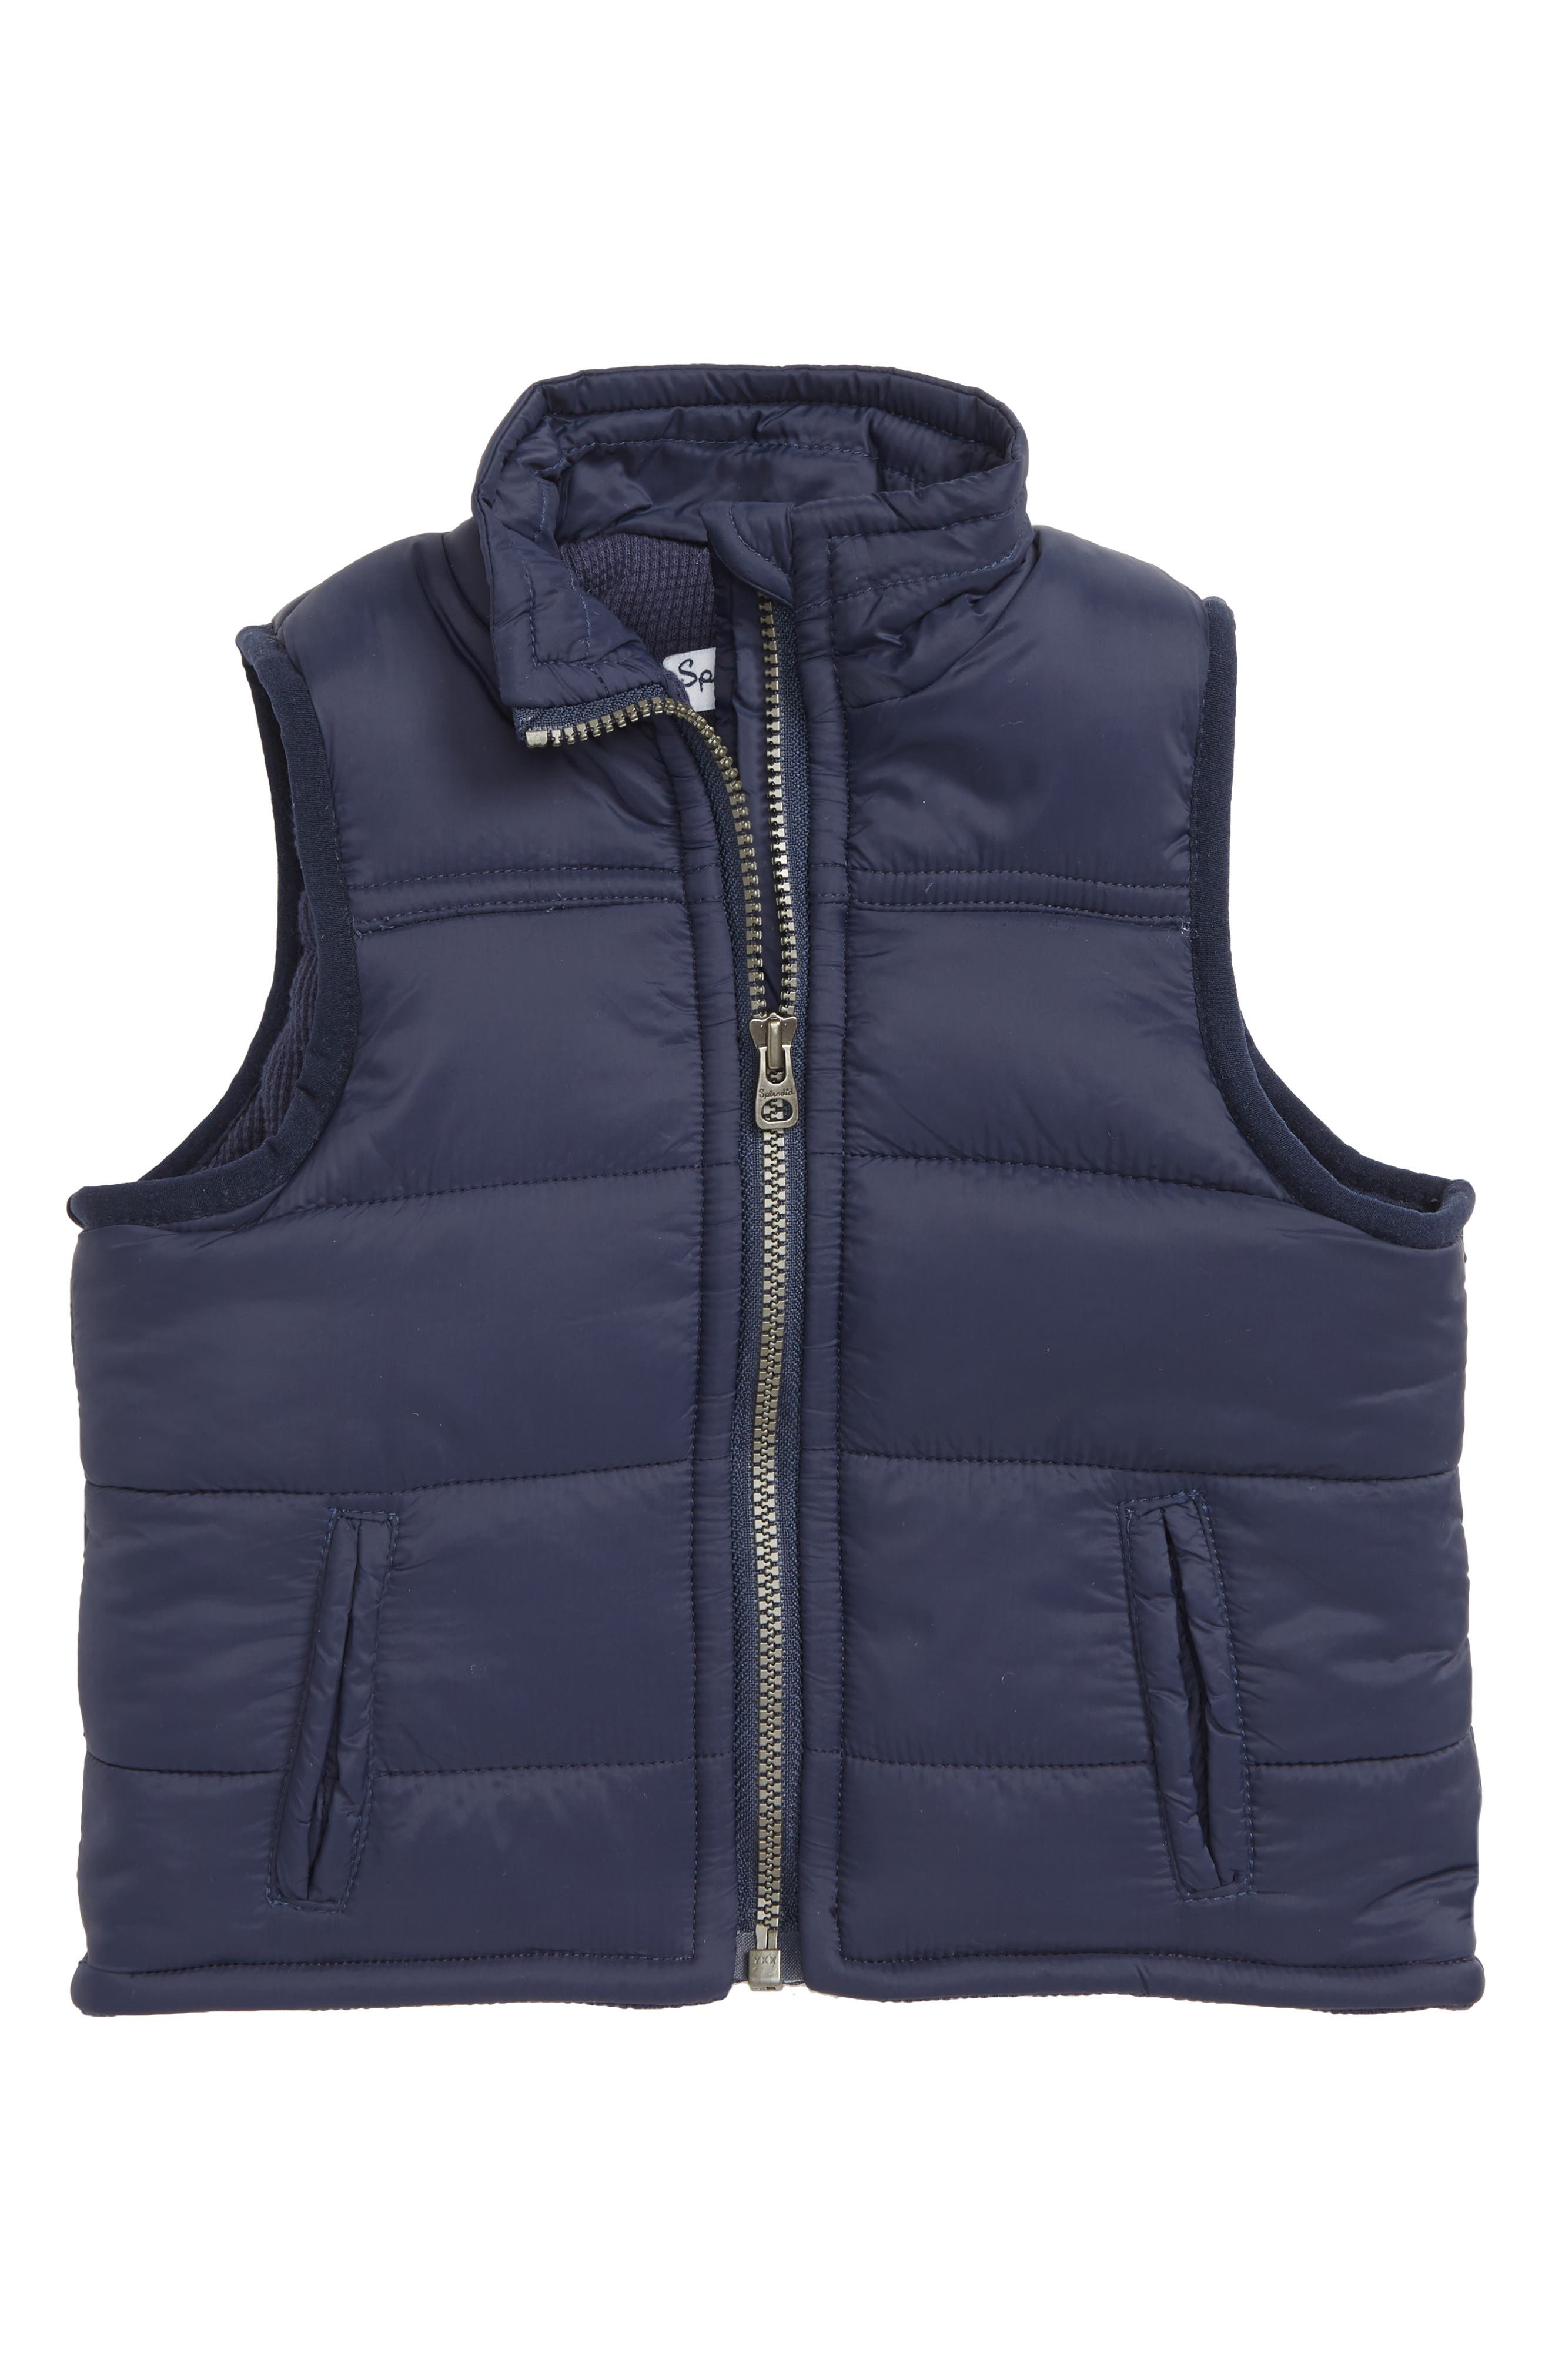 Puffer Vest,                             Main thumbnail 1, color,                             411